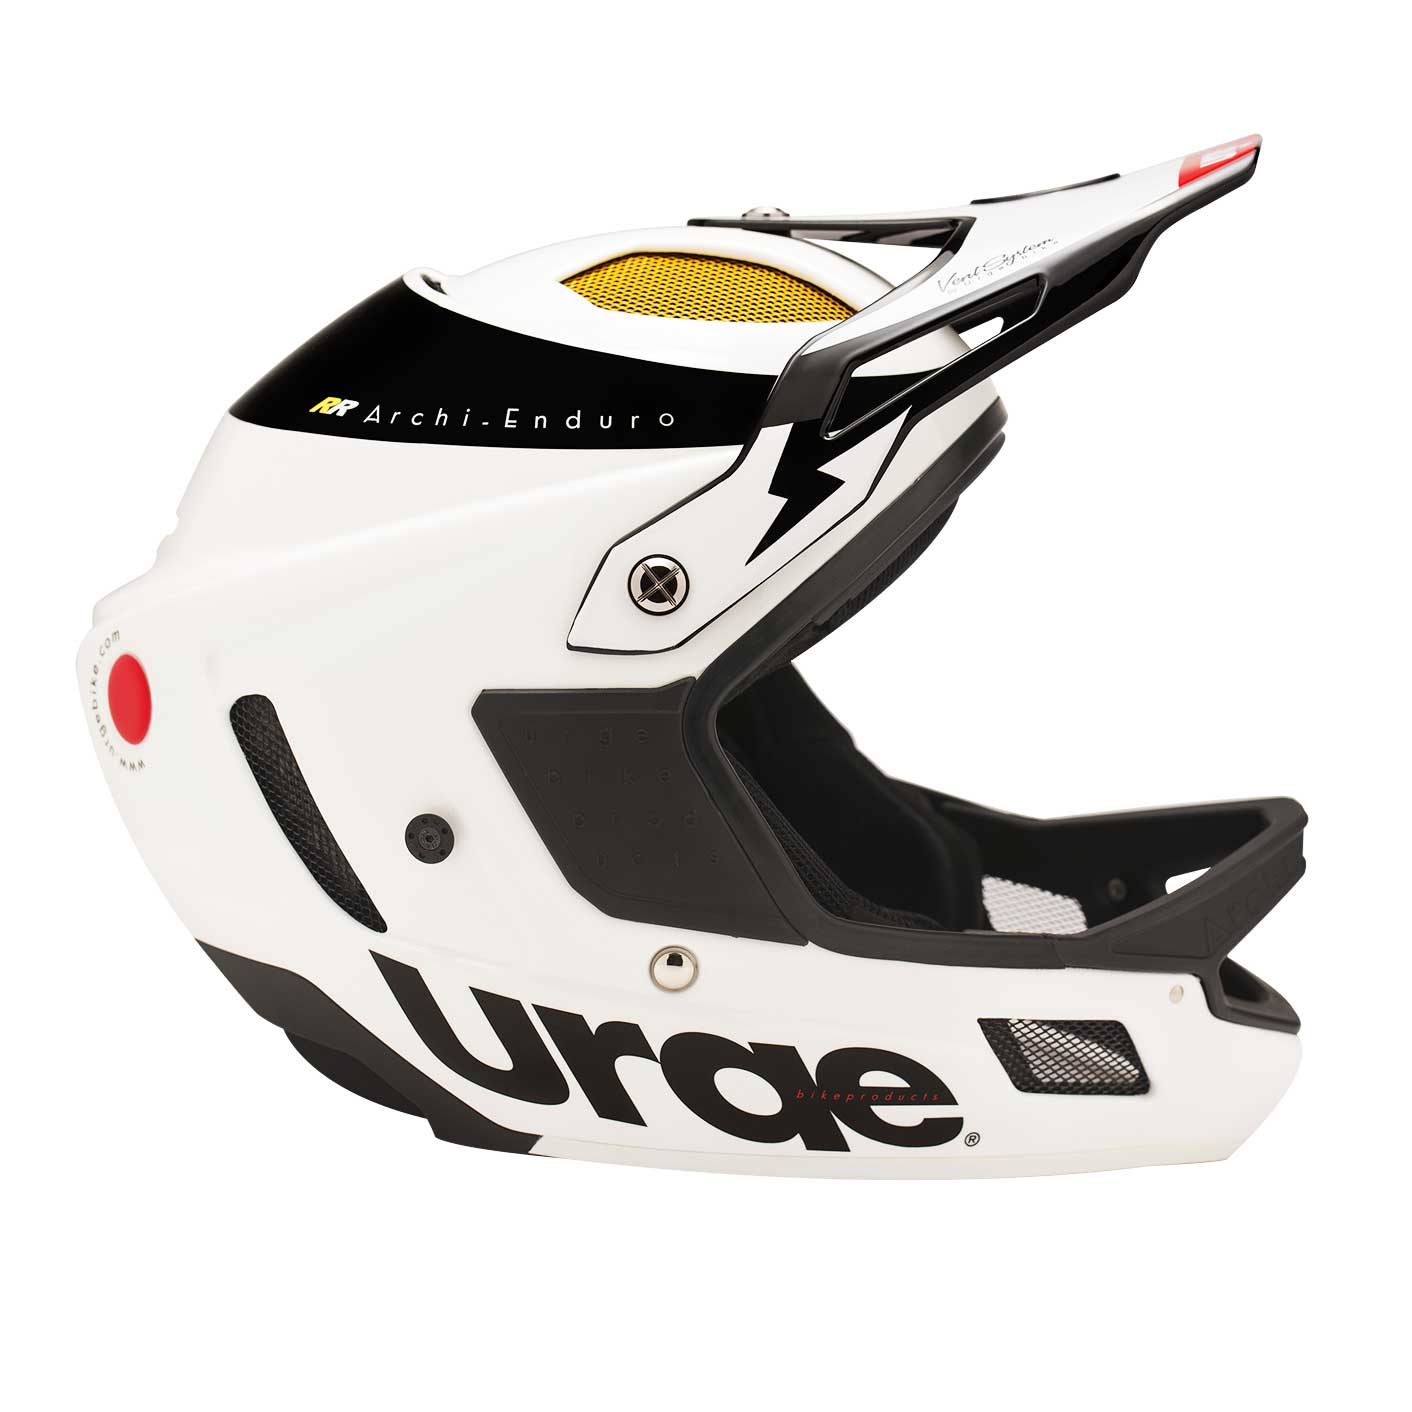 Urge BP - Archi-Enduro white black